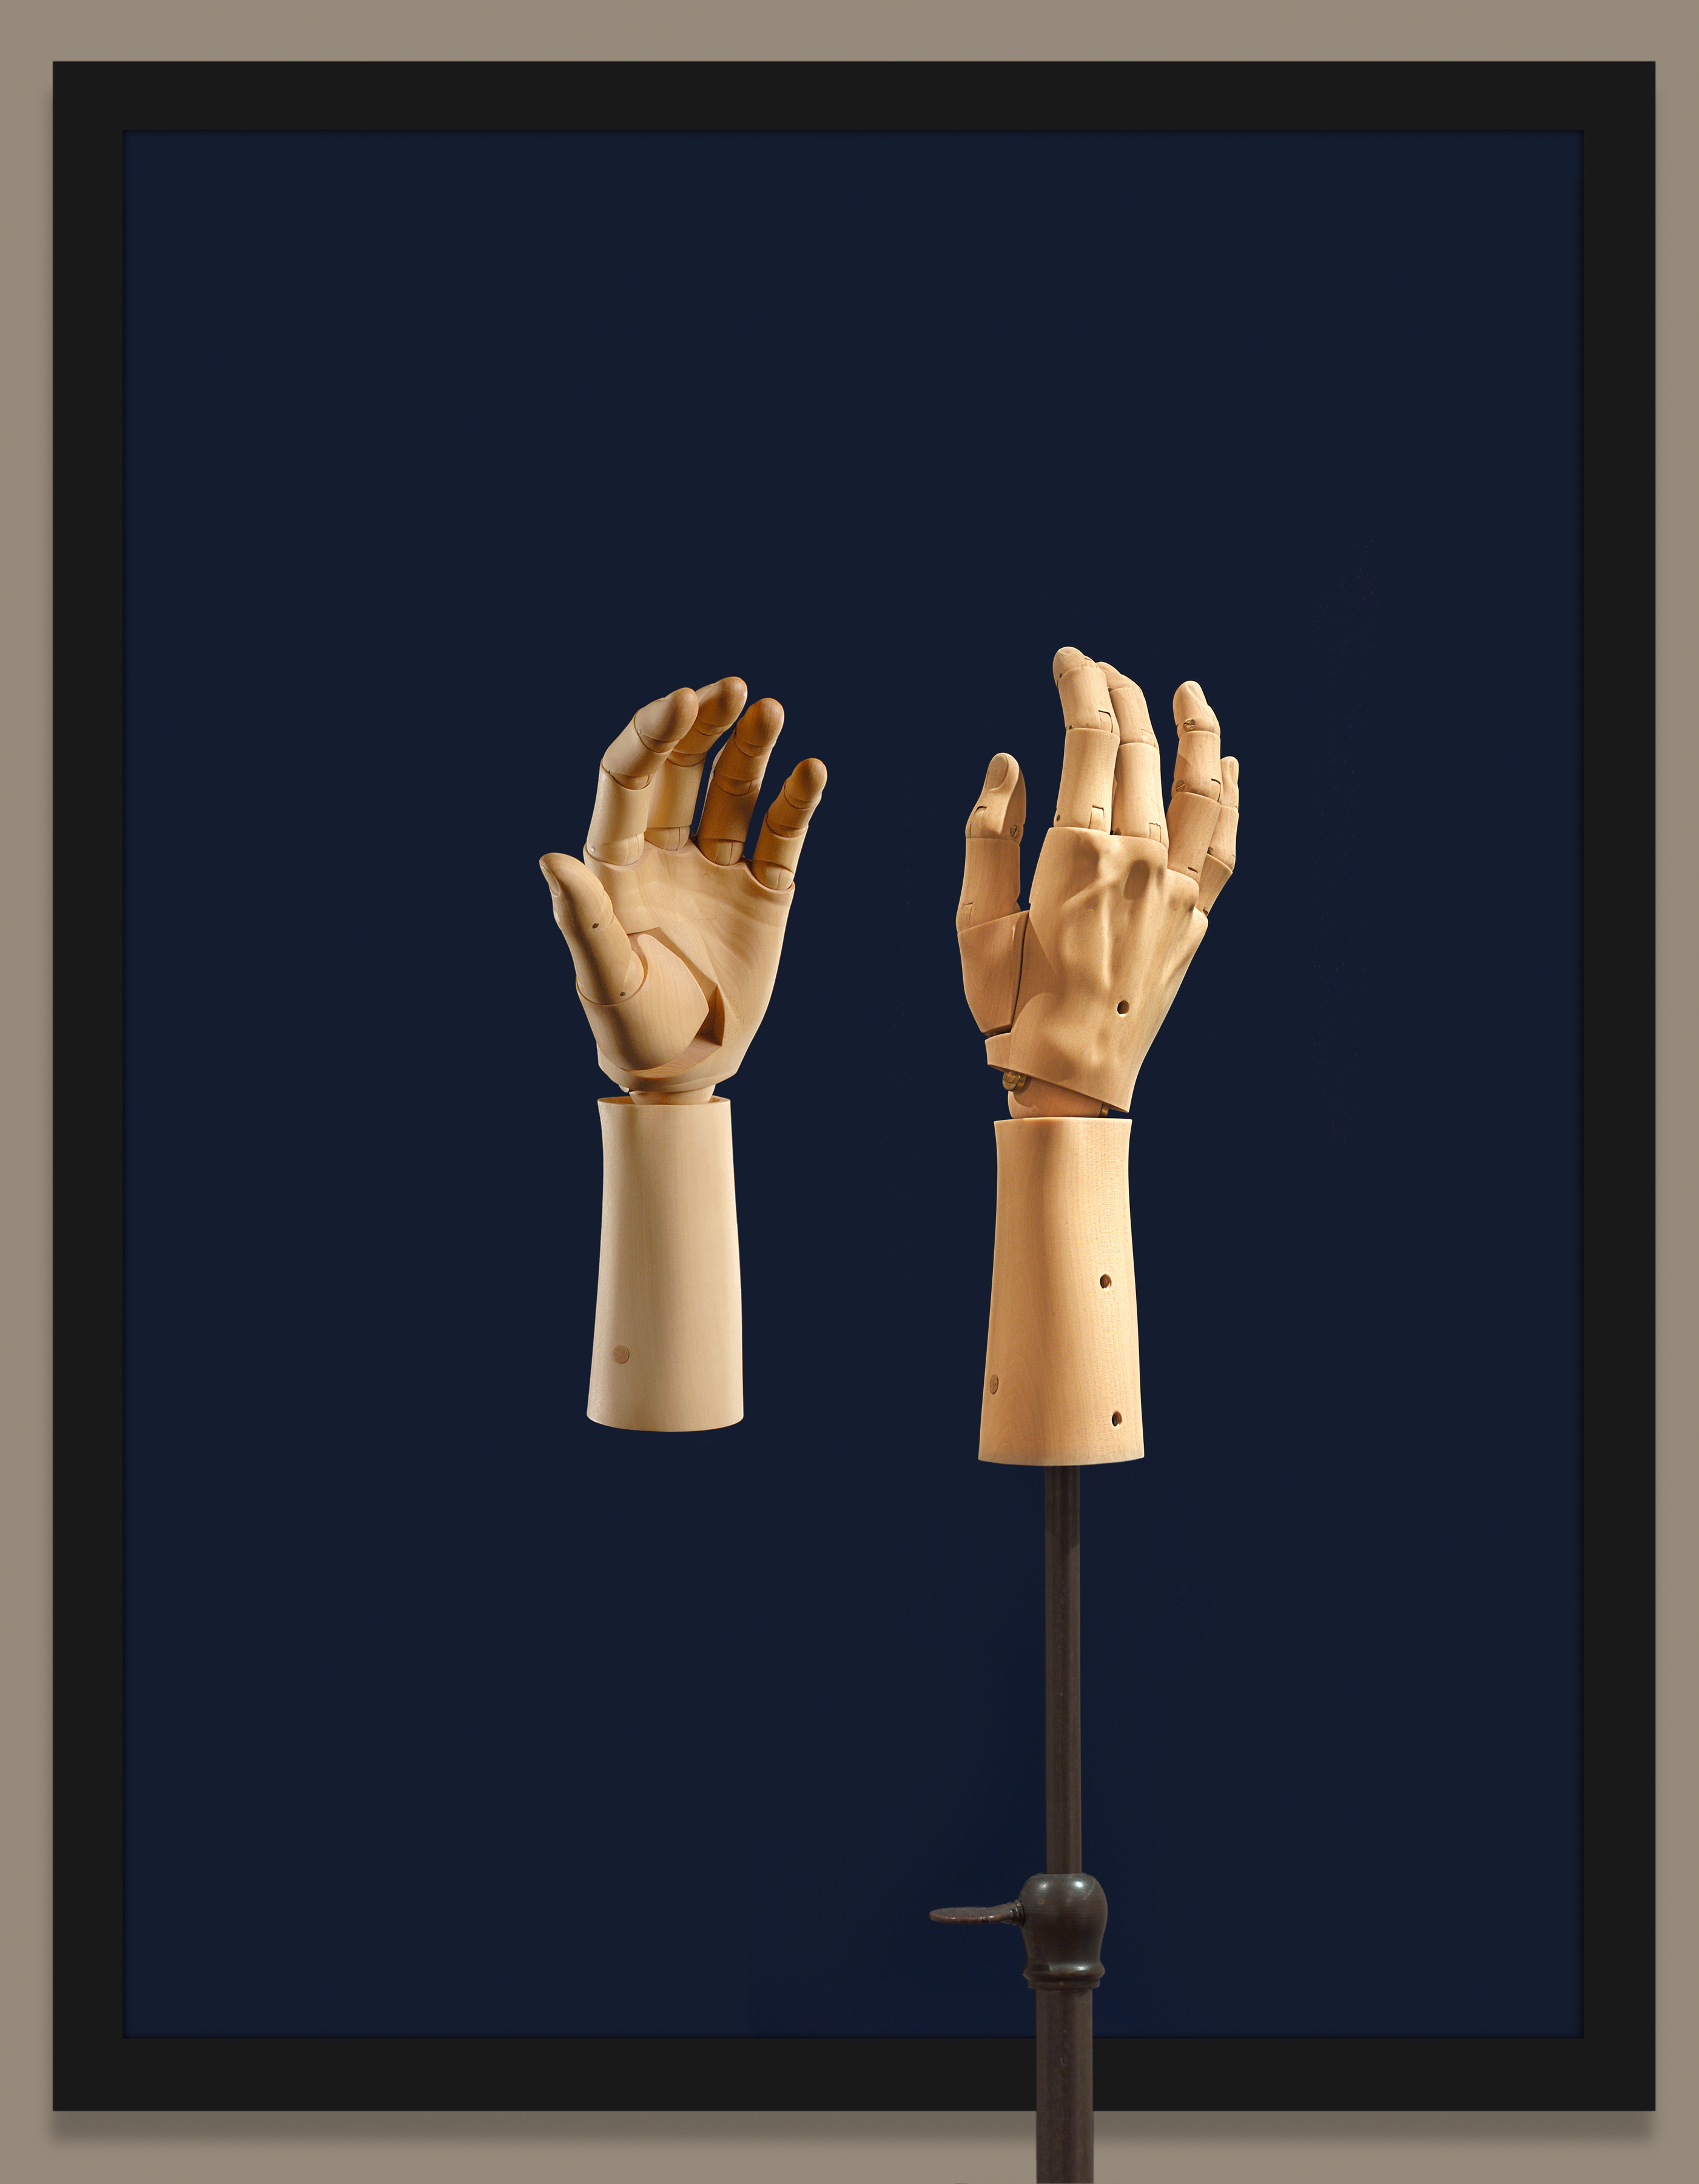 Elizabeth King, Bartlett's Hand (2005): A carved wooden sculpture has movable joints that hypnotically come to life in an accompanying animated film. From the collection of Robert and Karen Duncan, Lincoln, Nebraska